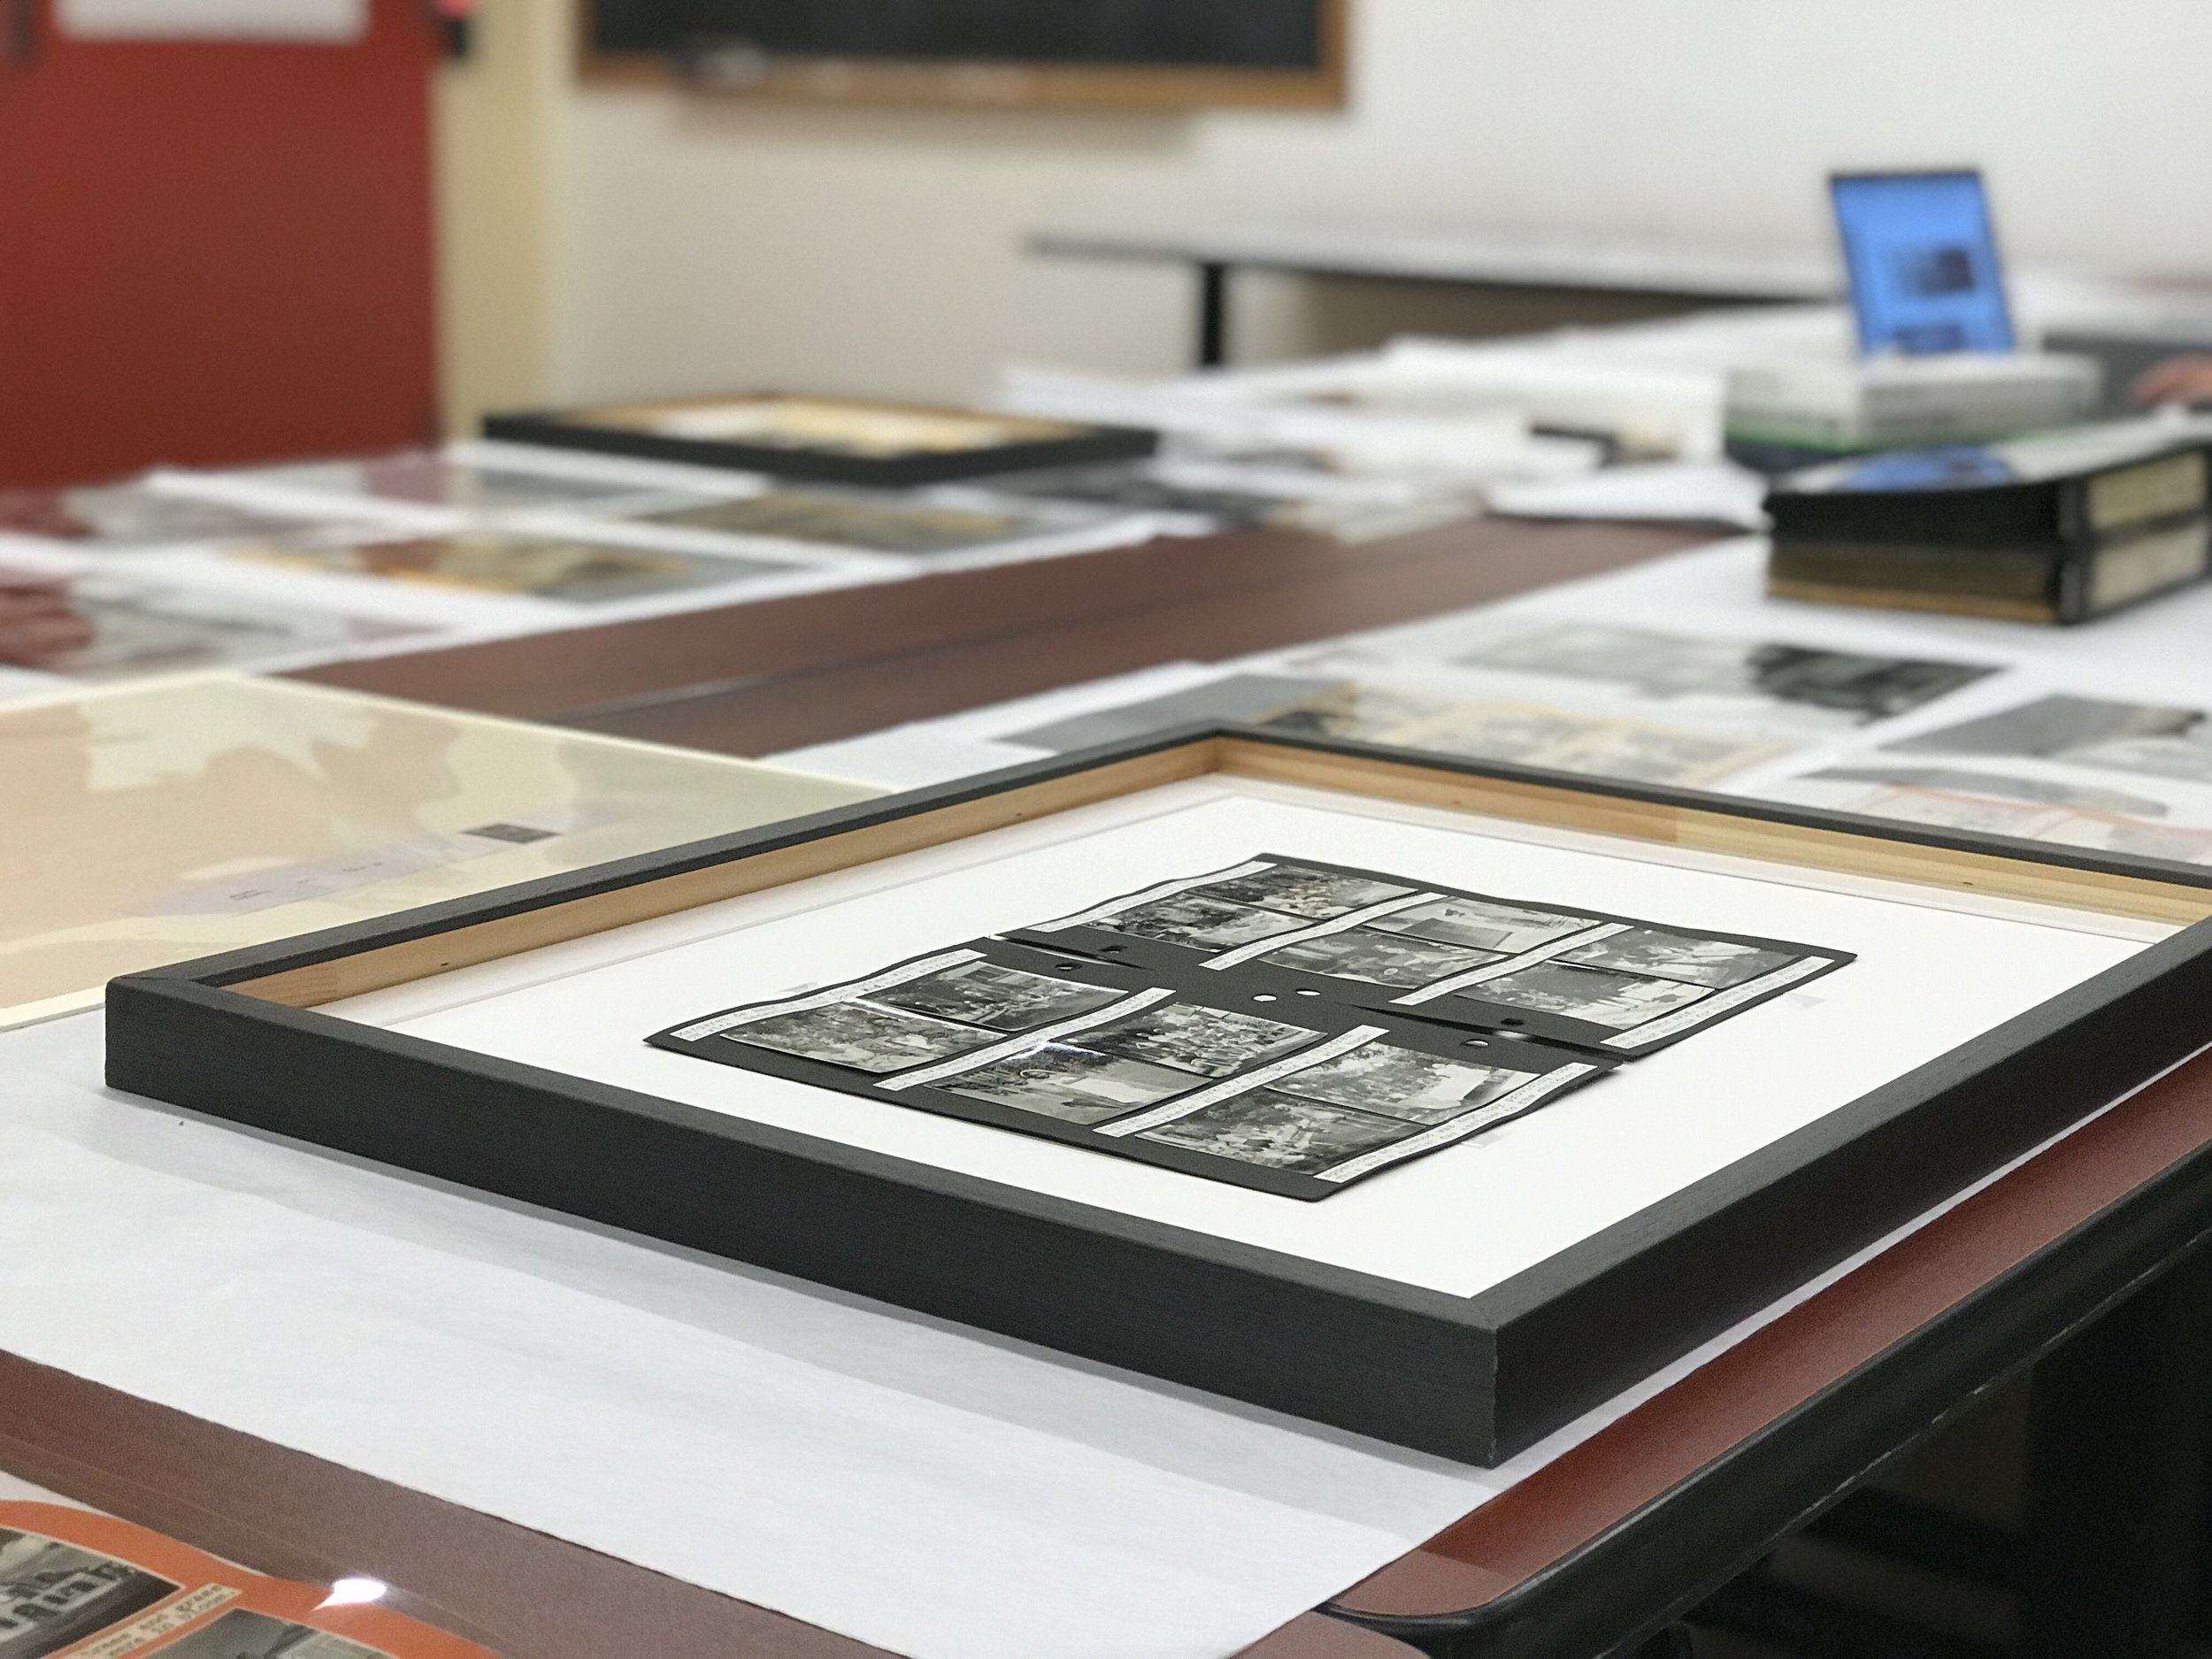 Corry albums set up for students at the ROM (Photo: Idit Kohan-Harpaz, 2017)